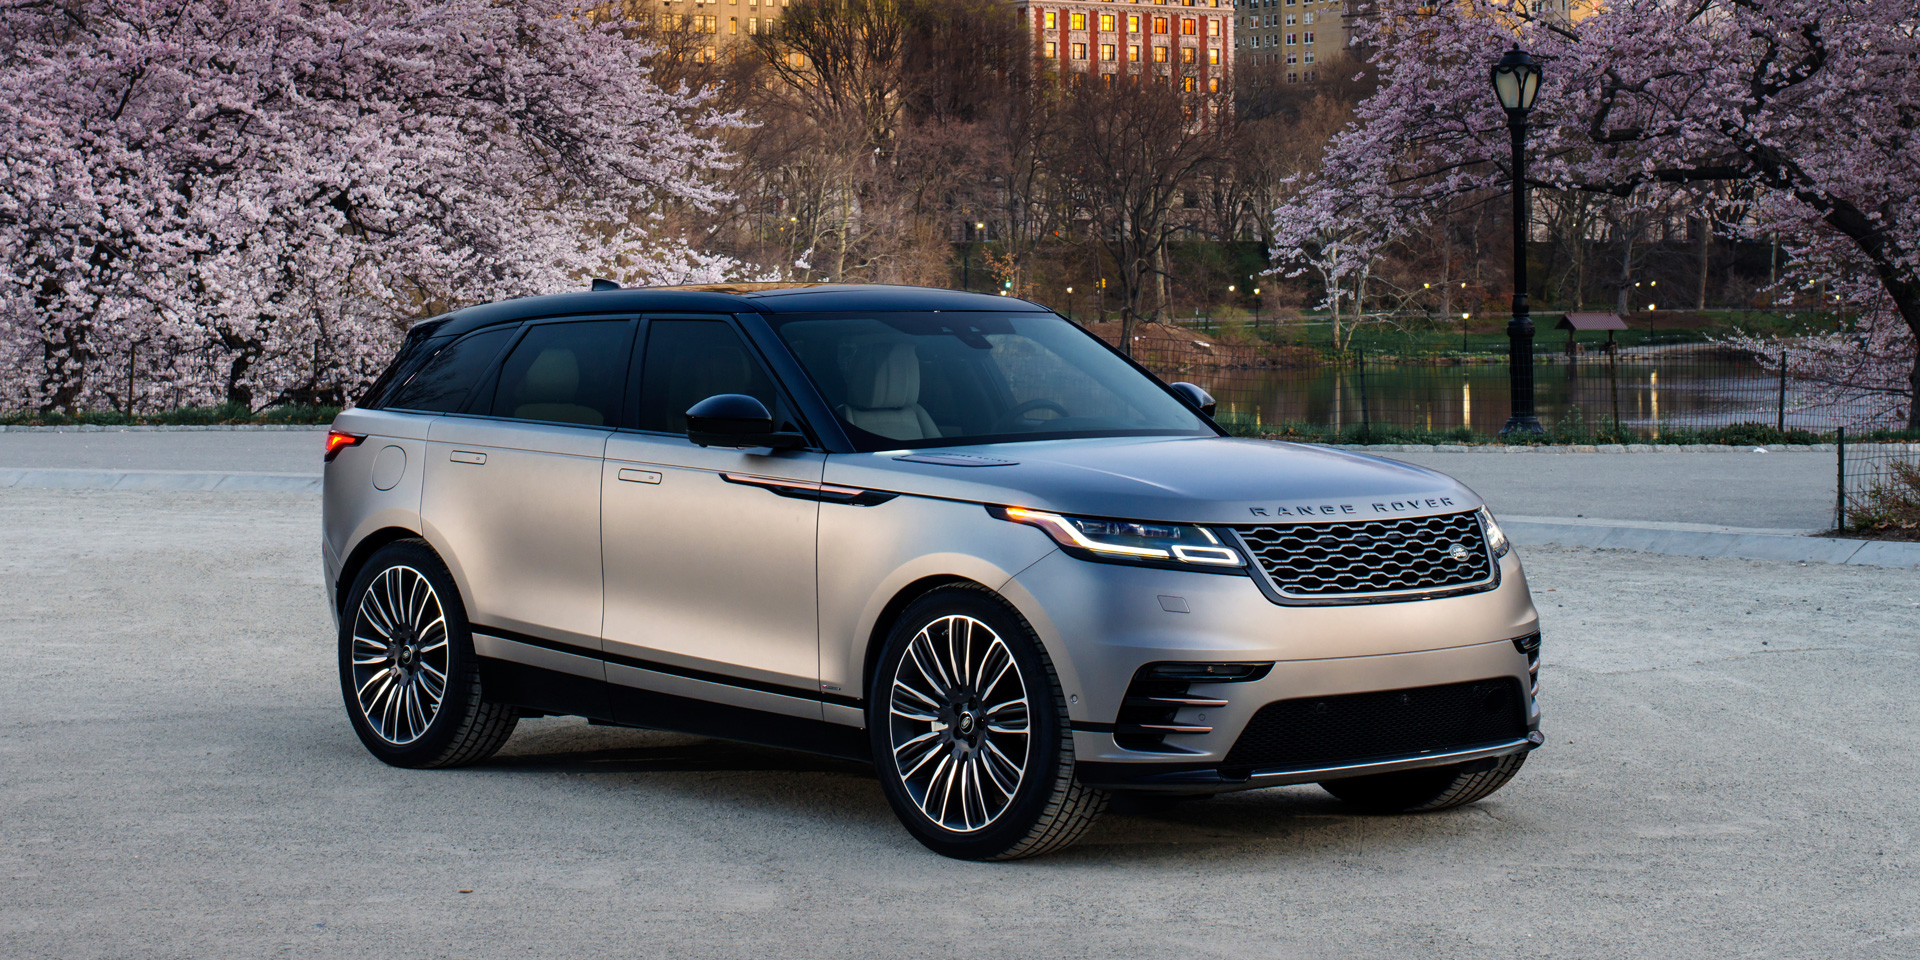 2018 - Land Rover - Range Rover Velar - Vehicles on ...